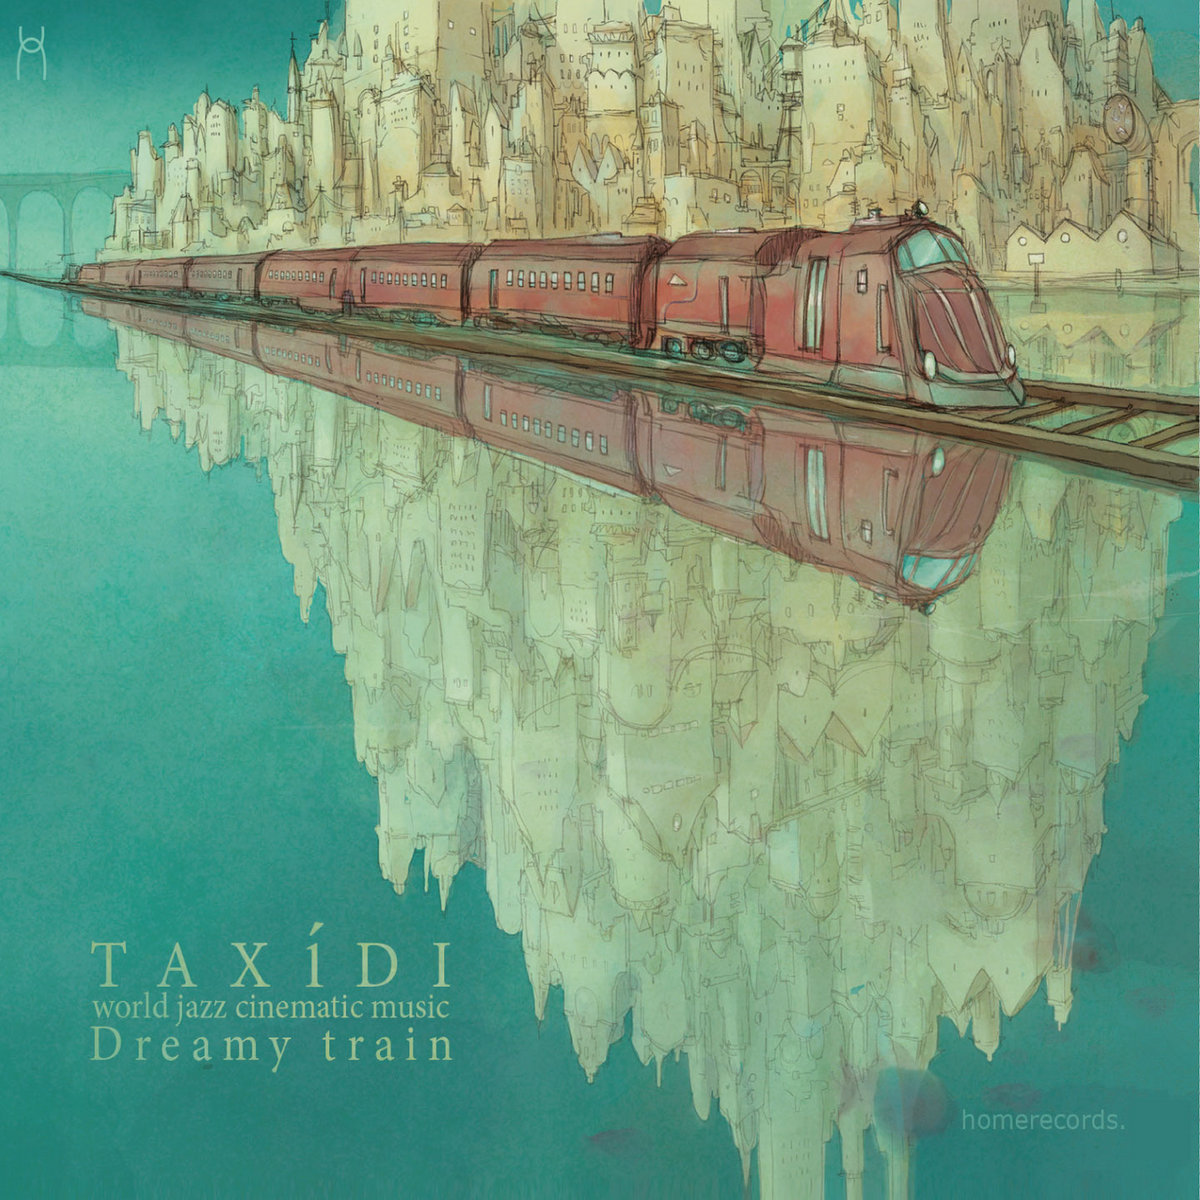 dreamy train | homerecords.be